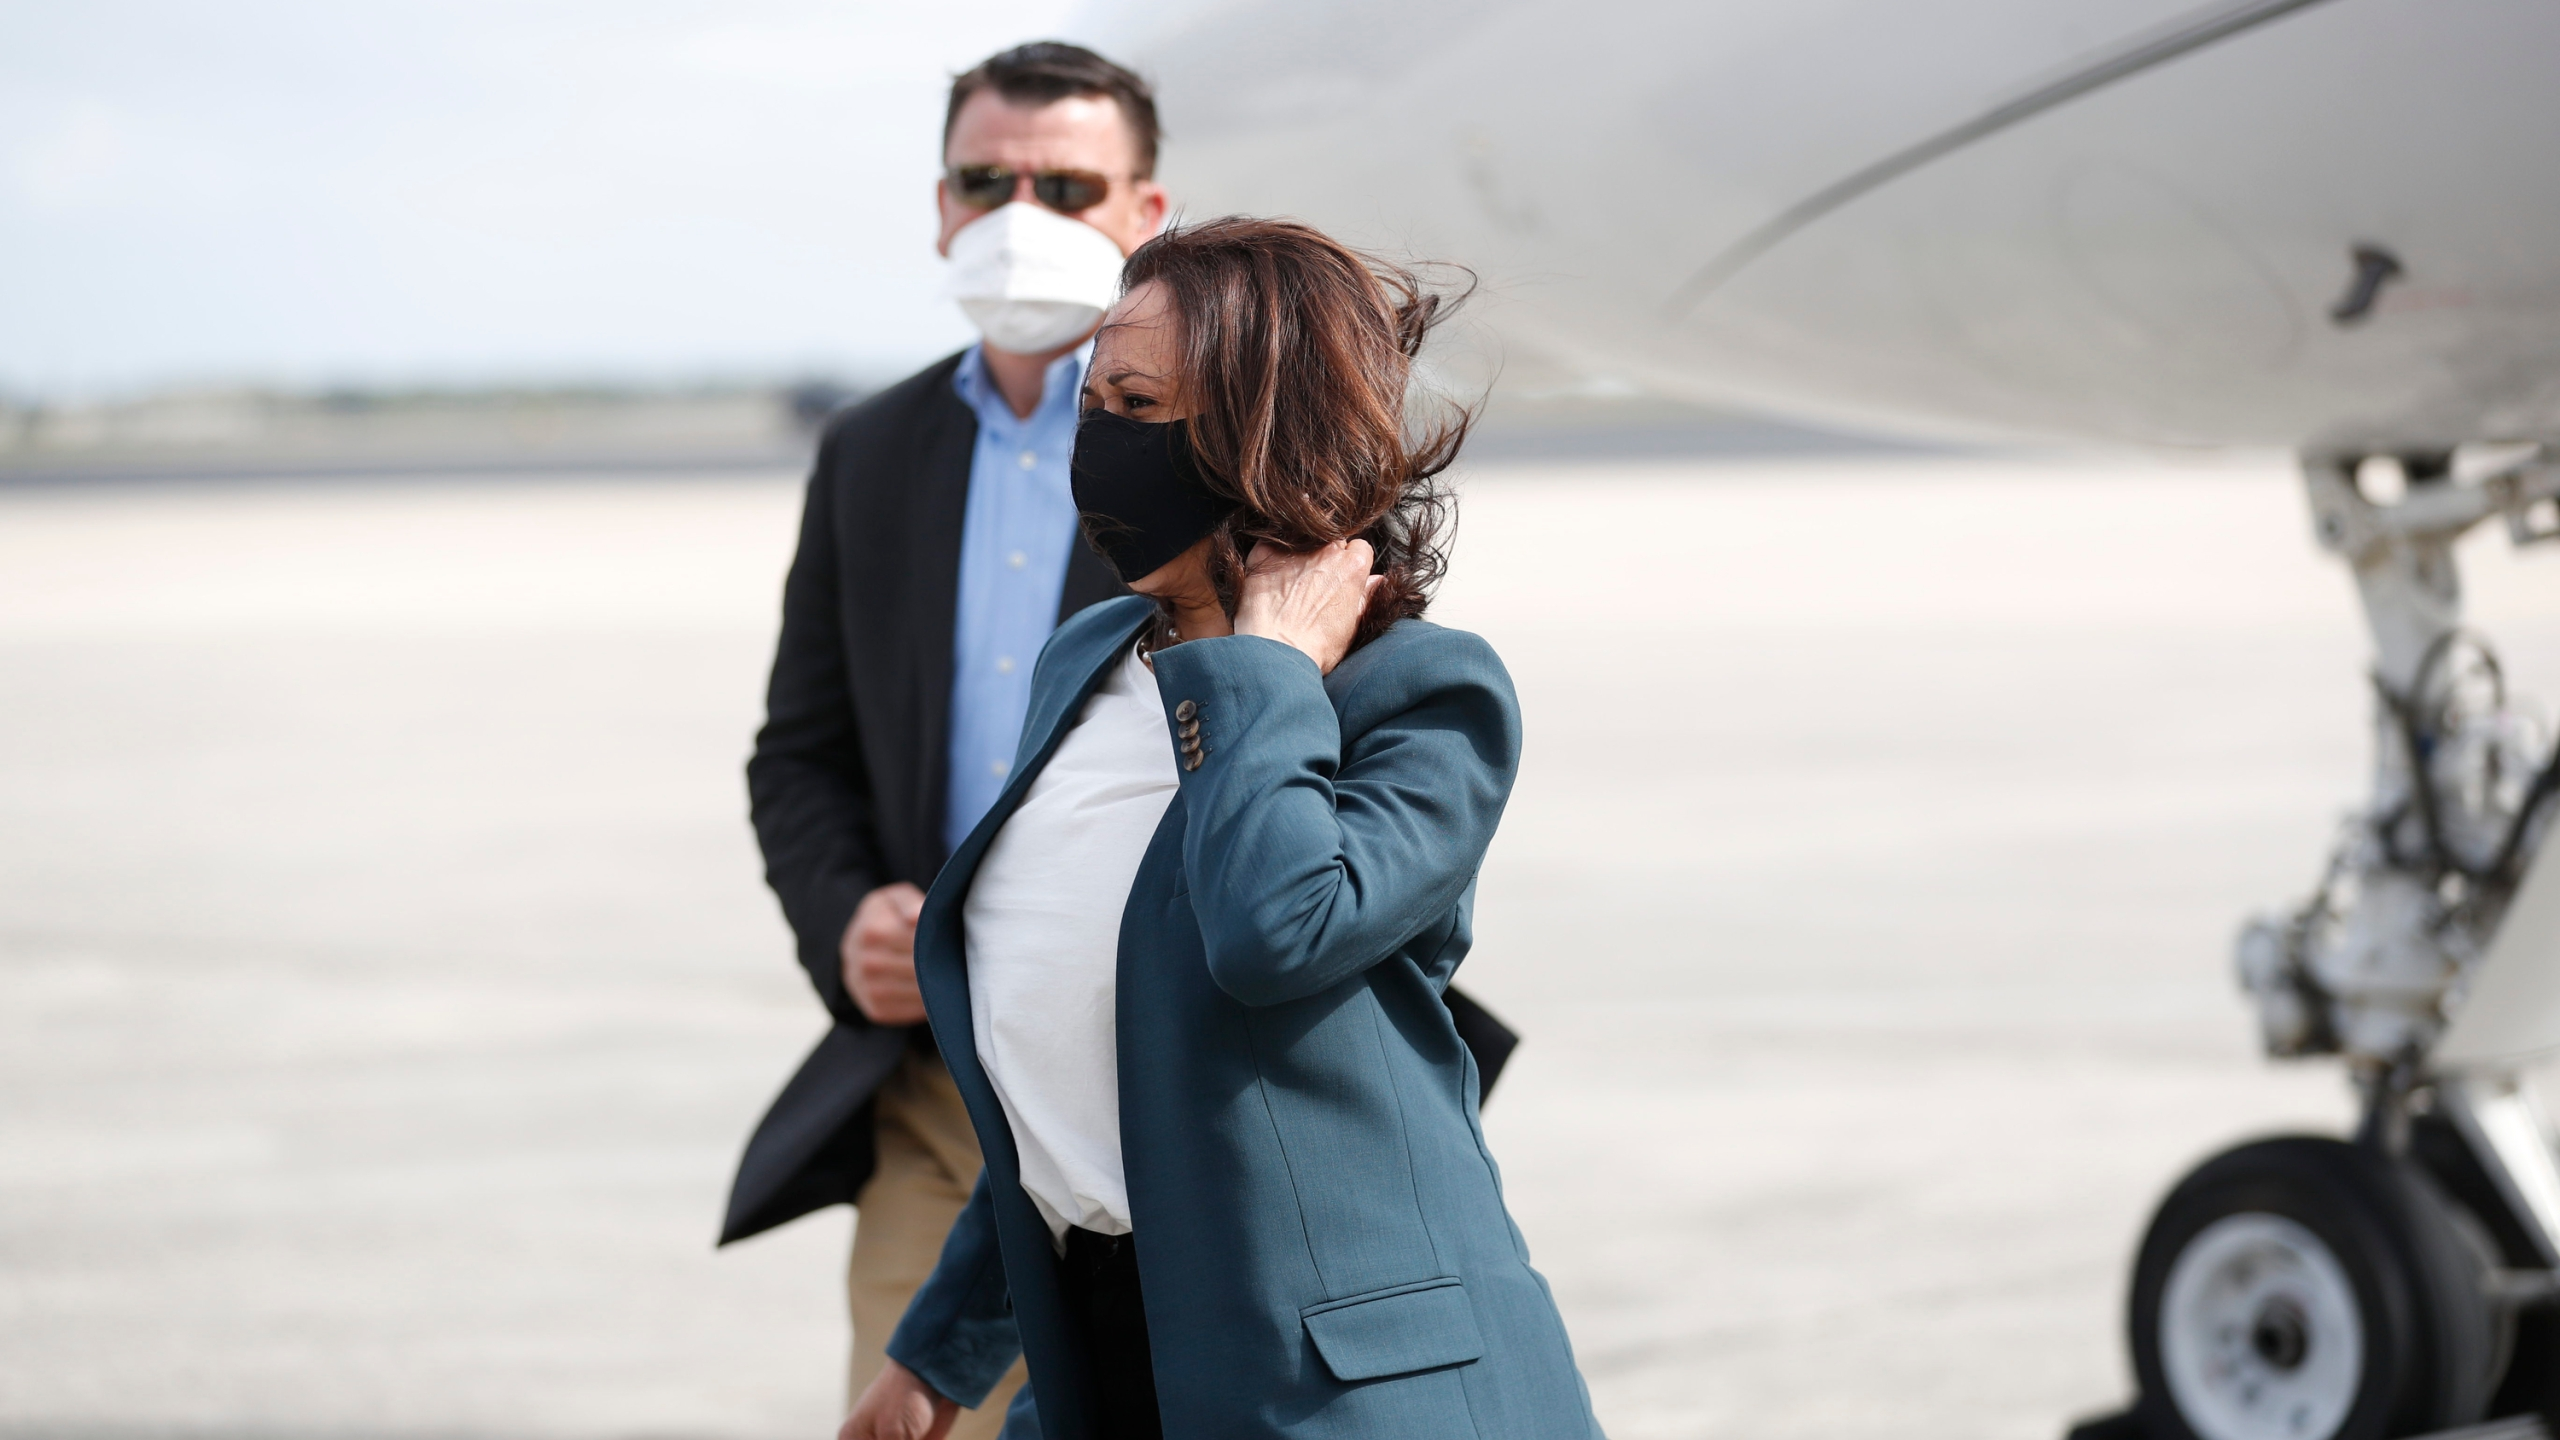 Democratic U.S. Vice Presidential nominee Sen. Kamala Harris arrives at the Orlando International Airport Orlando to show support for an early voting mobilization event on Oct. 19, 2020 in Orlando, Florida. (Octavio Jones/Getty Images)